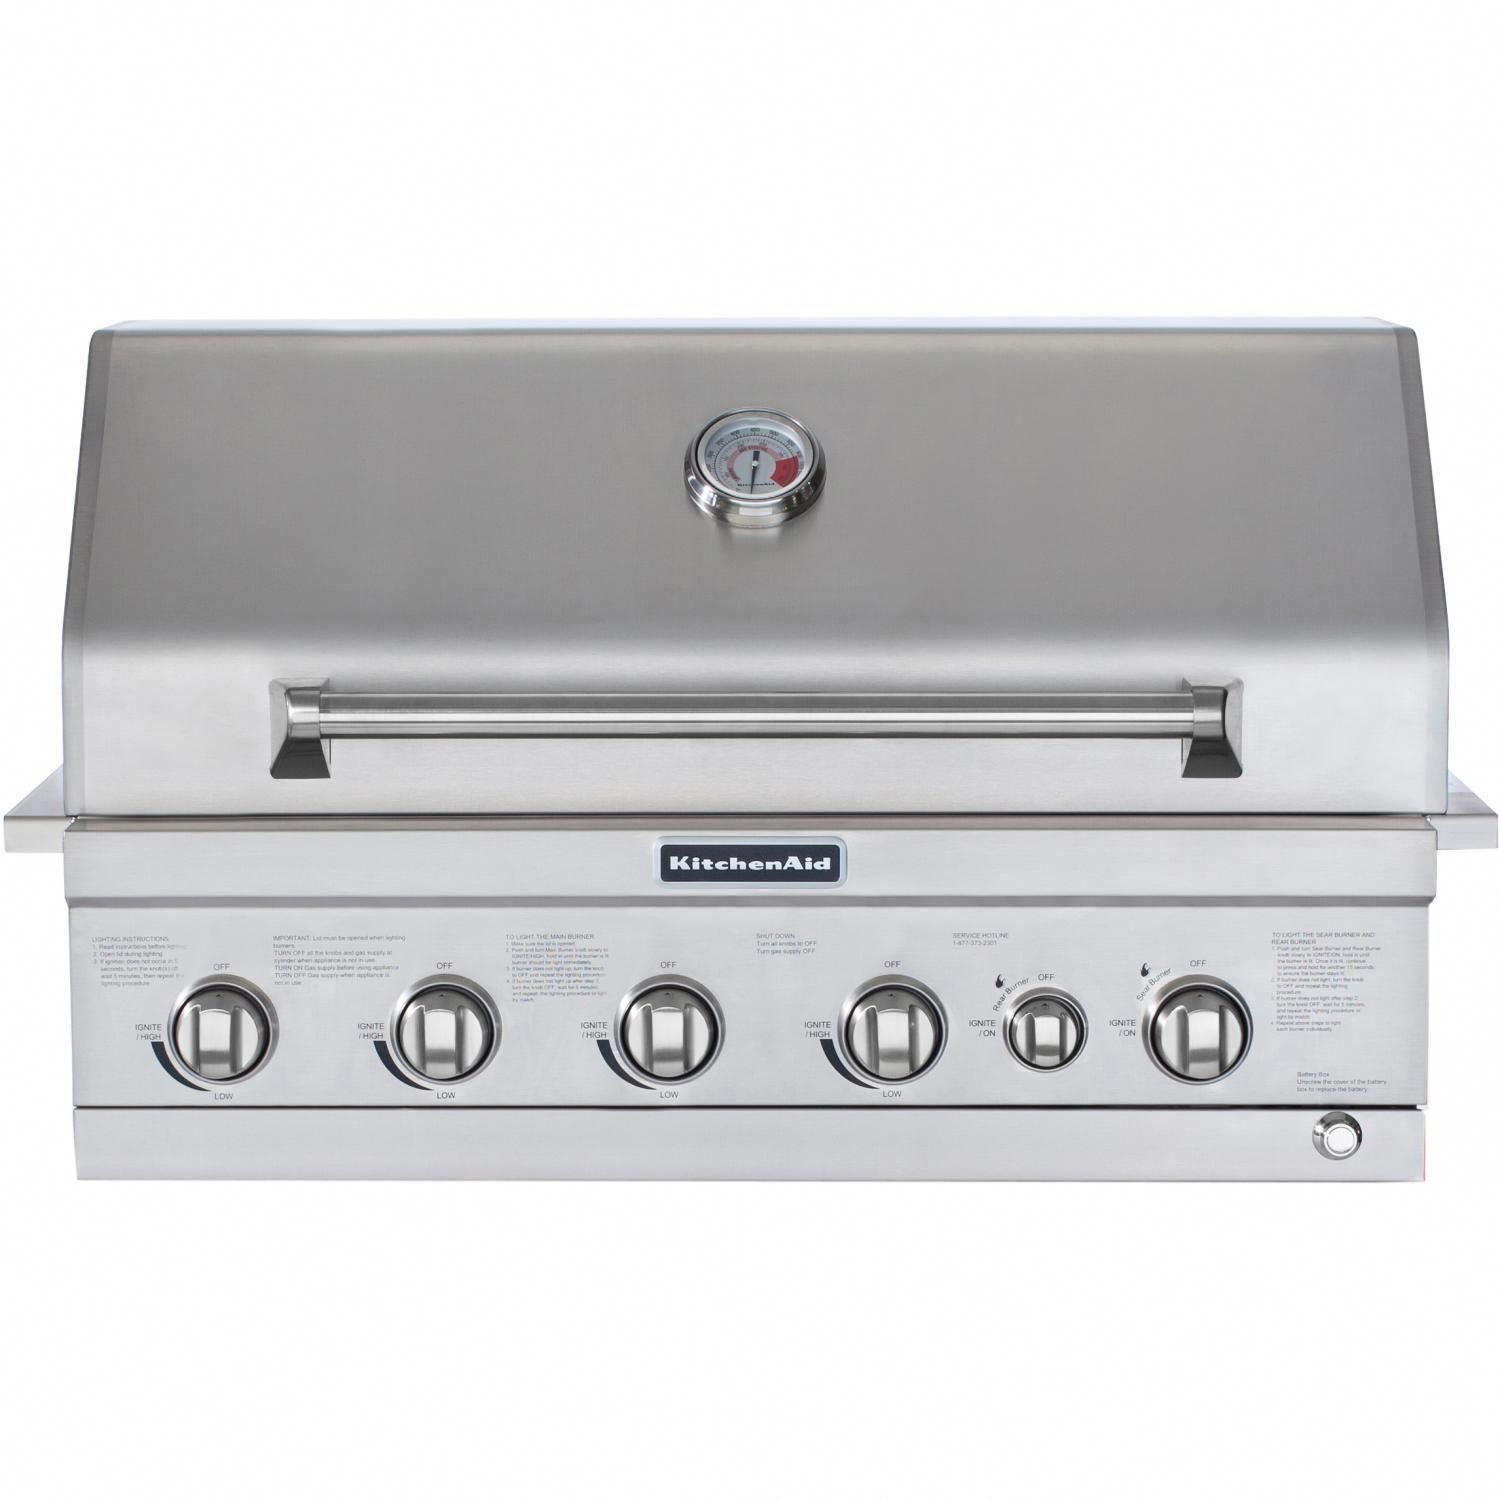 Kitchenaid 36inch builtin propane gas grill with searing